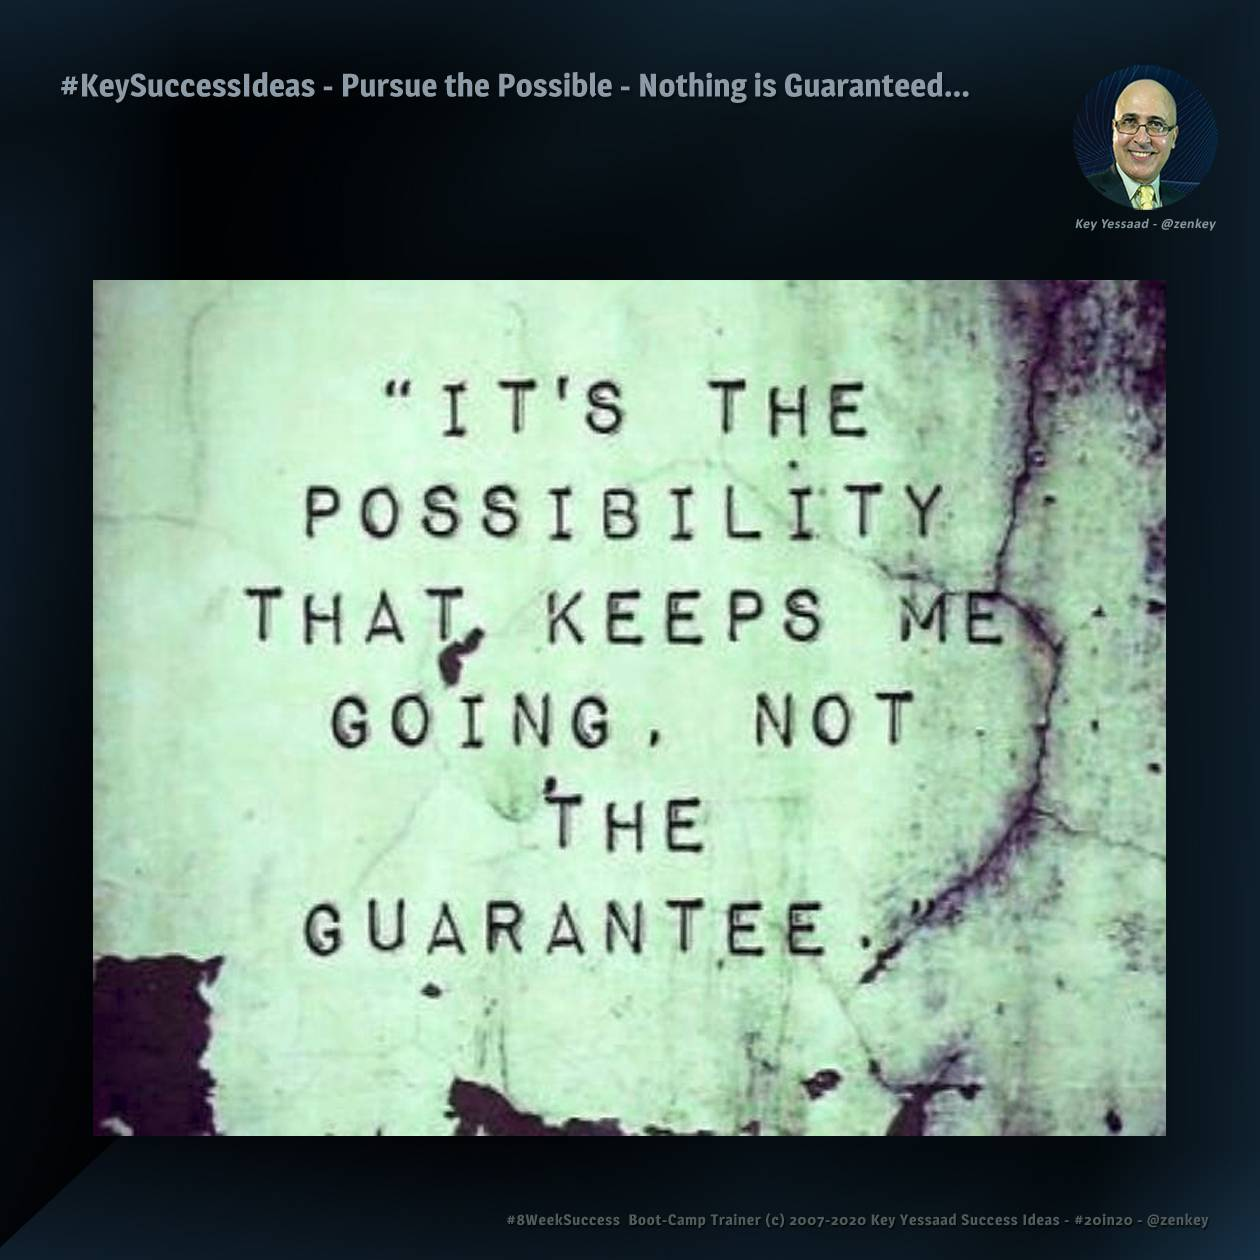 Pursue the Possible - Nothing is Guaranteed... - #KeySuccessIdeas